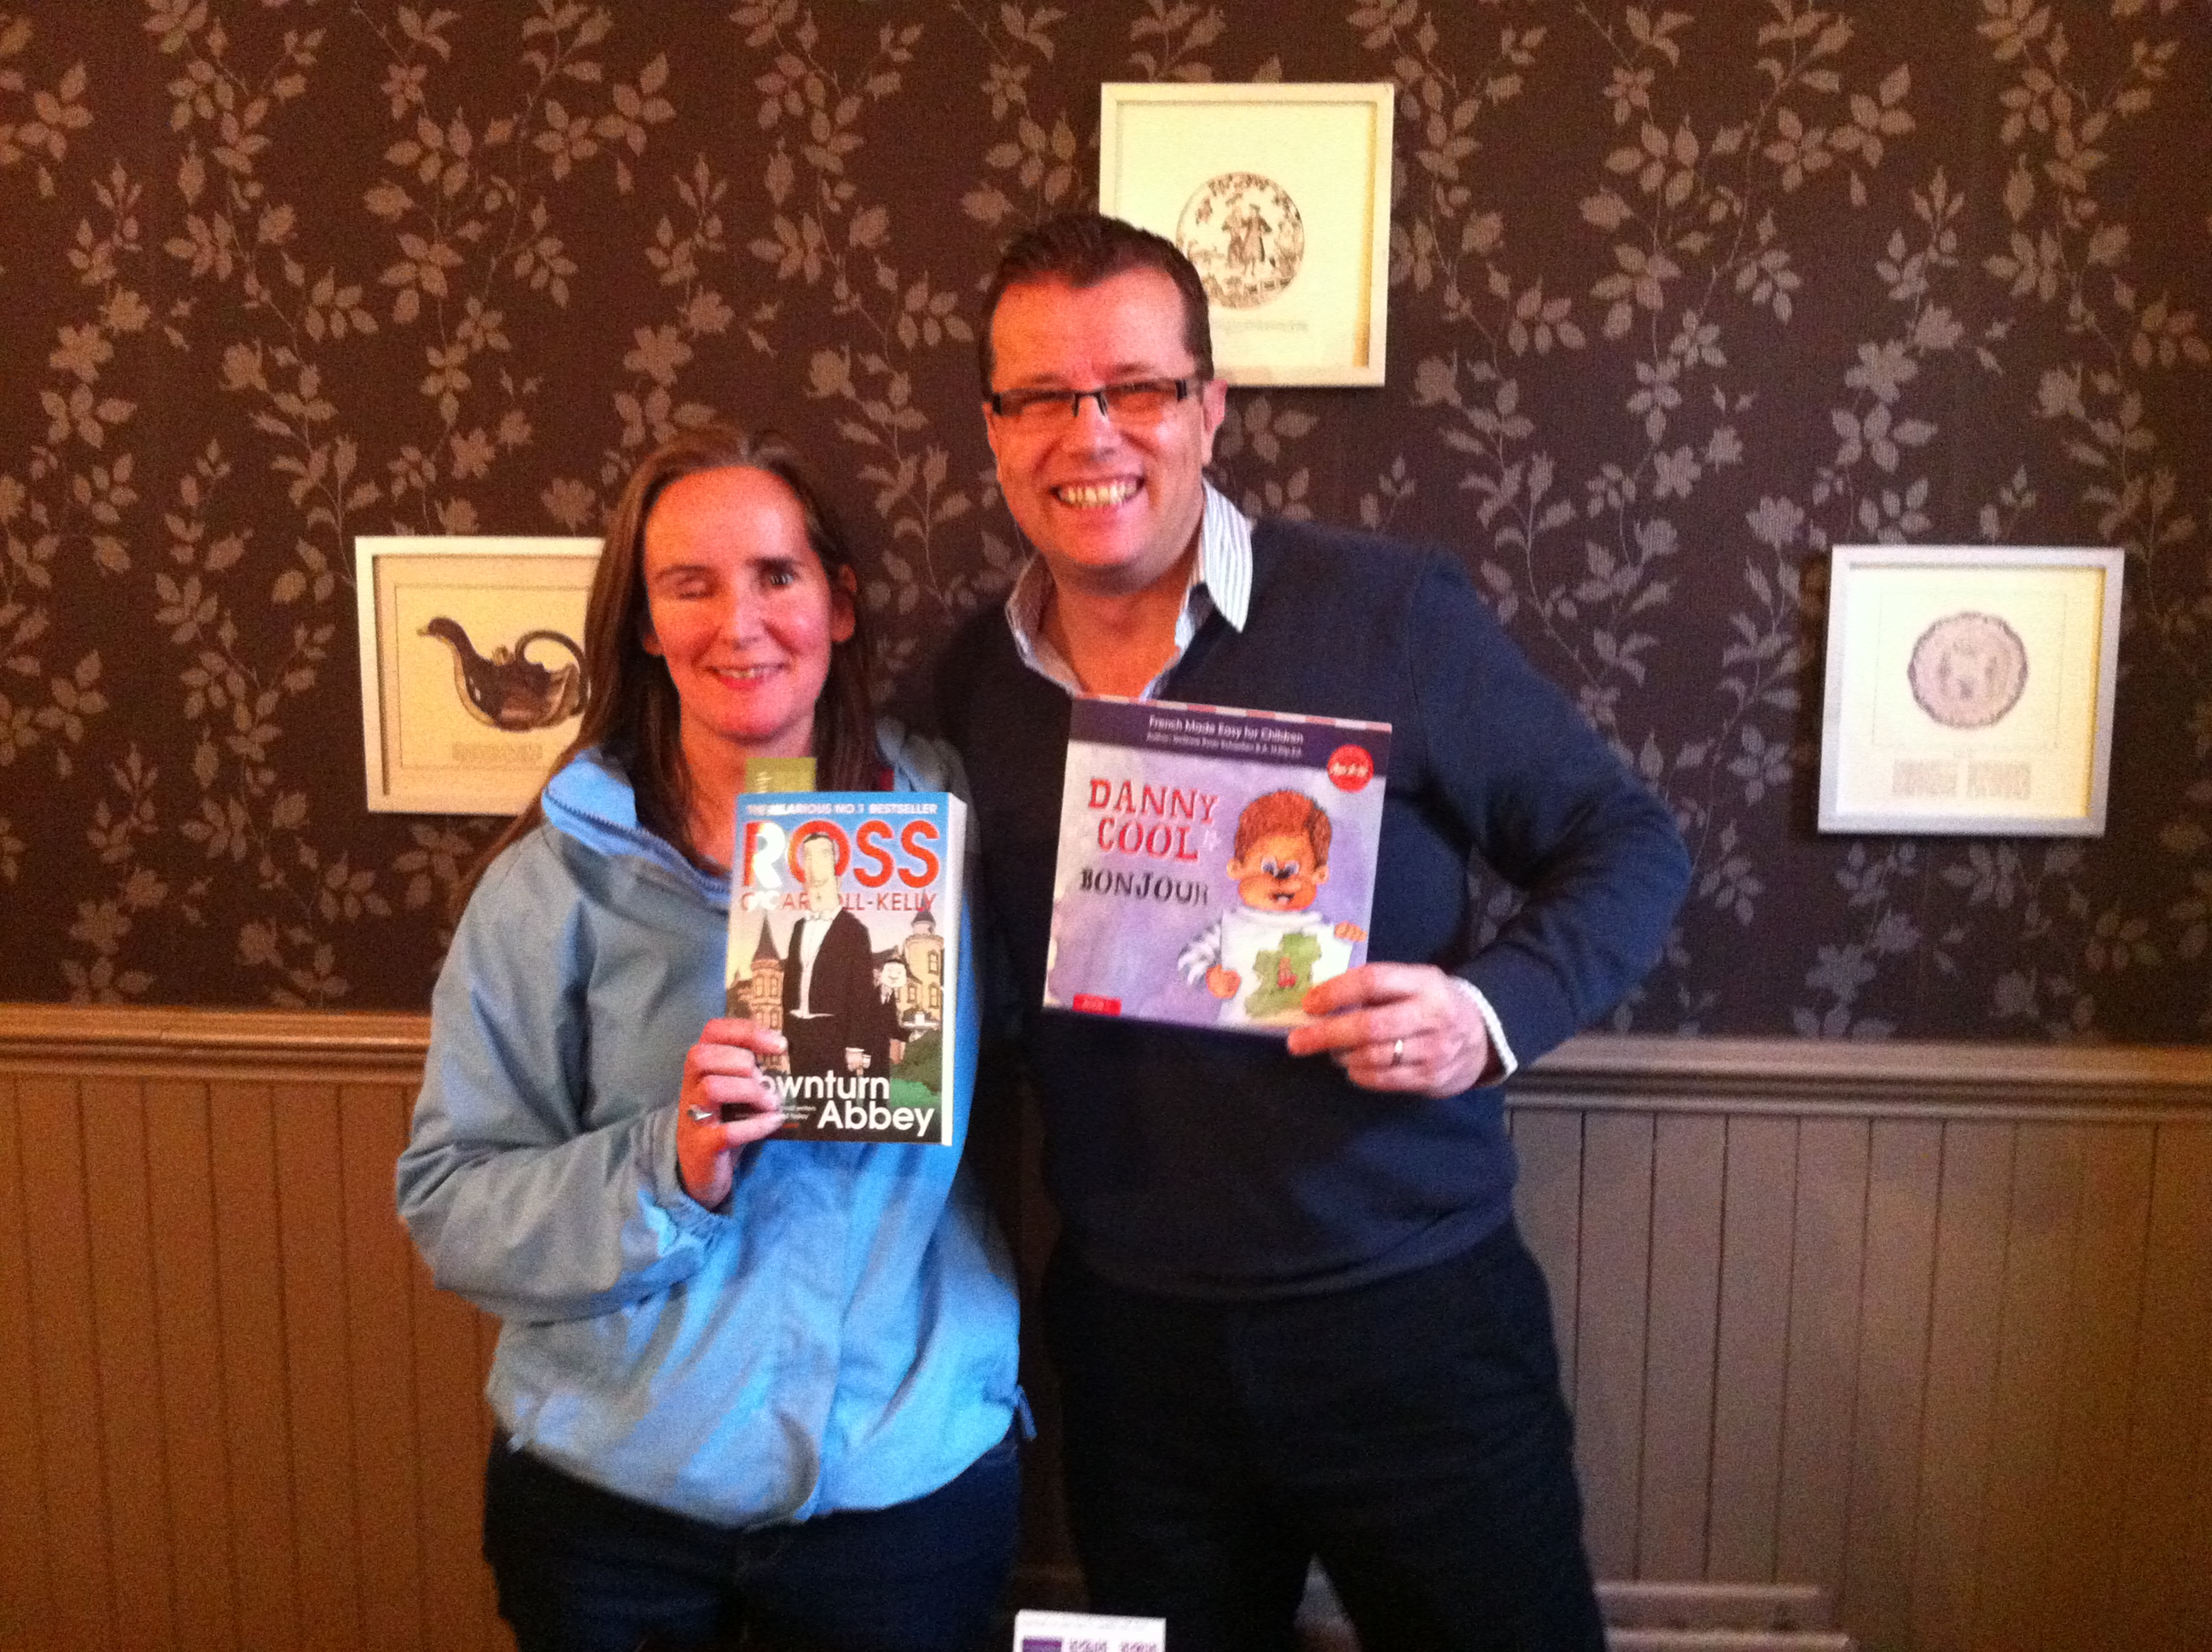 Danny Cool with RossOCK